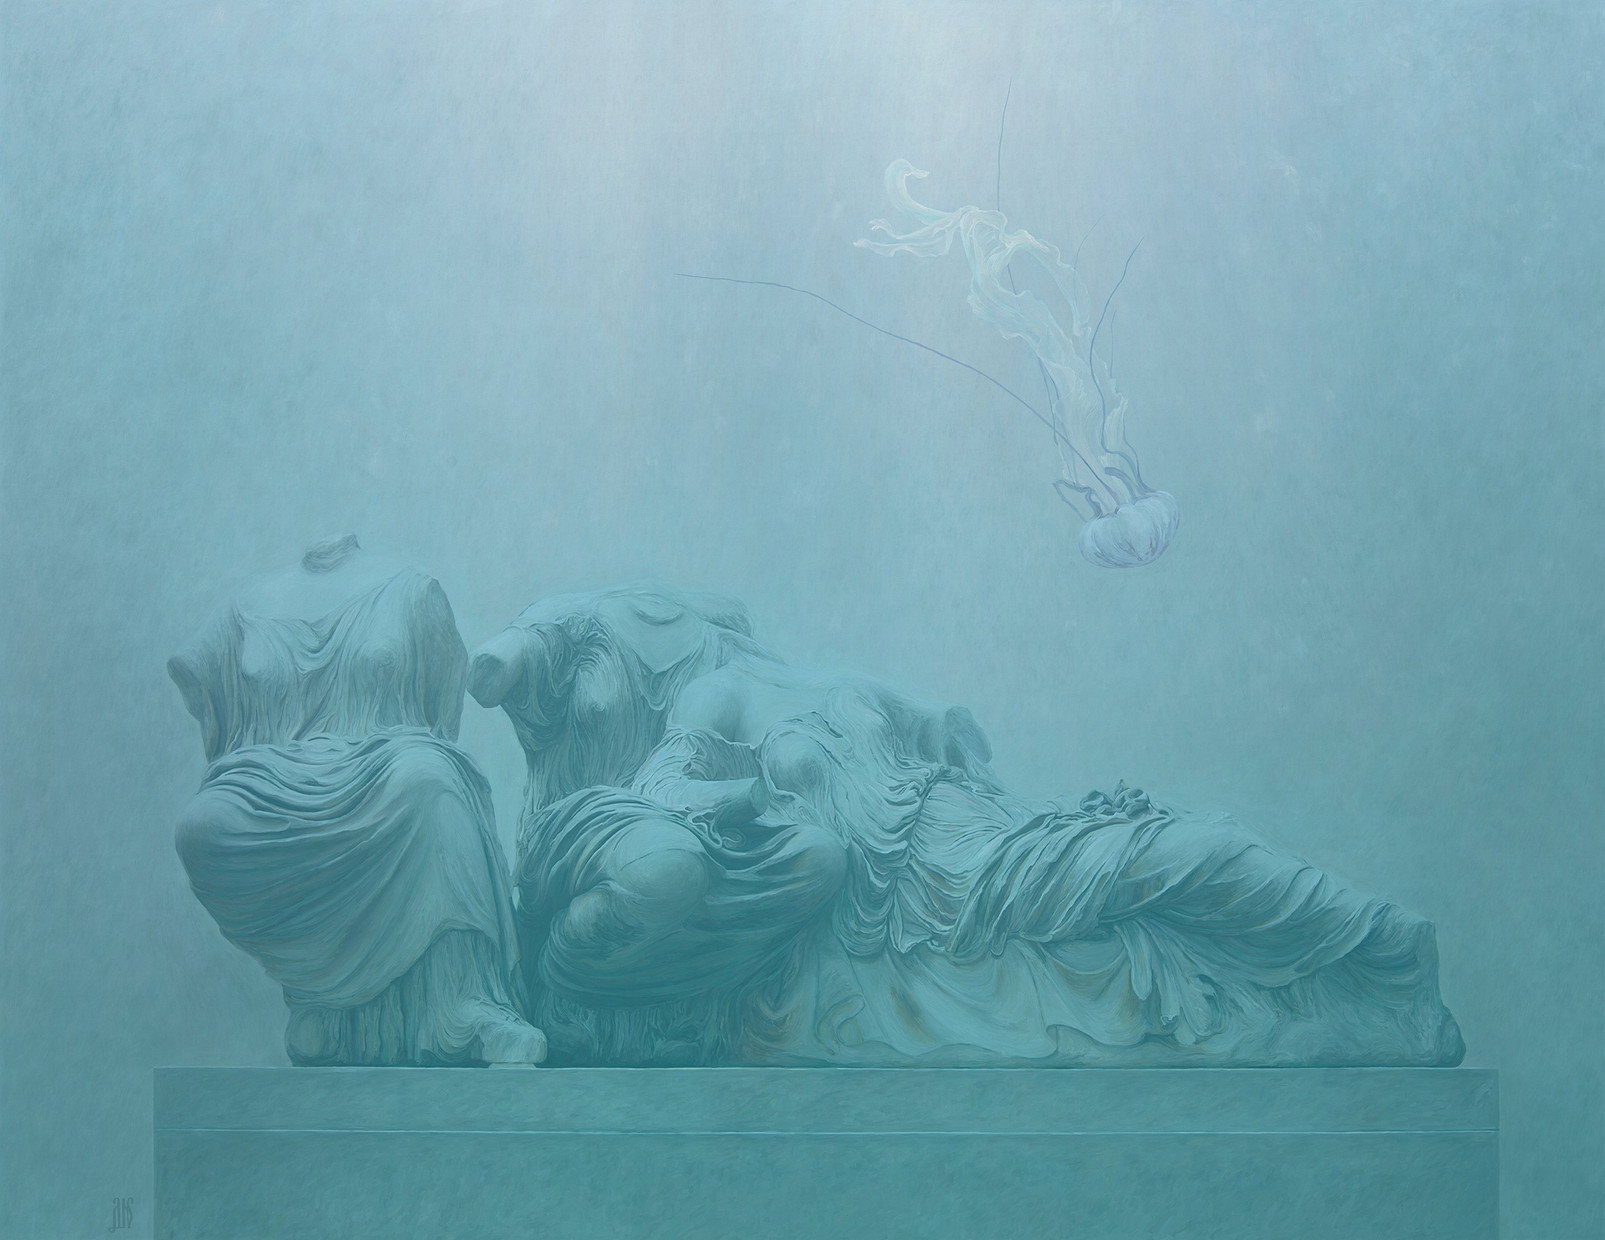 Goddesses of the Parthenon in the Age of Climate Change (Sunken Cities 2100)